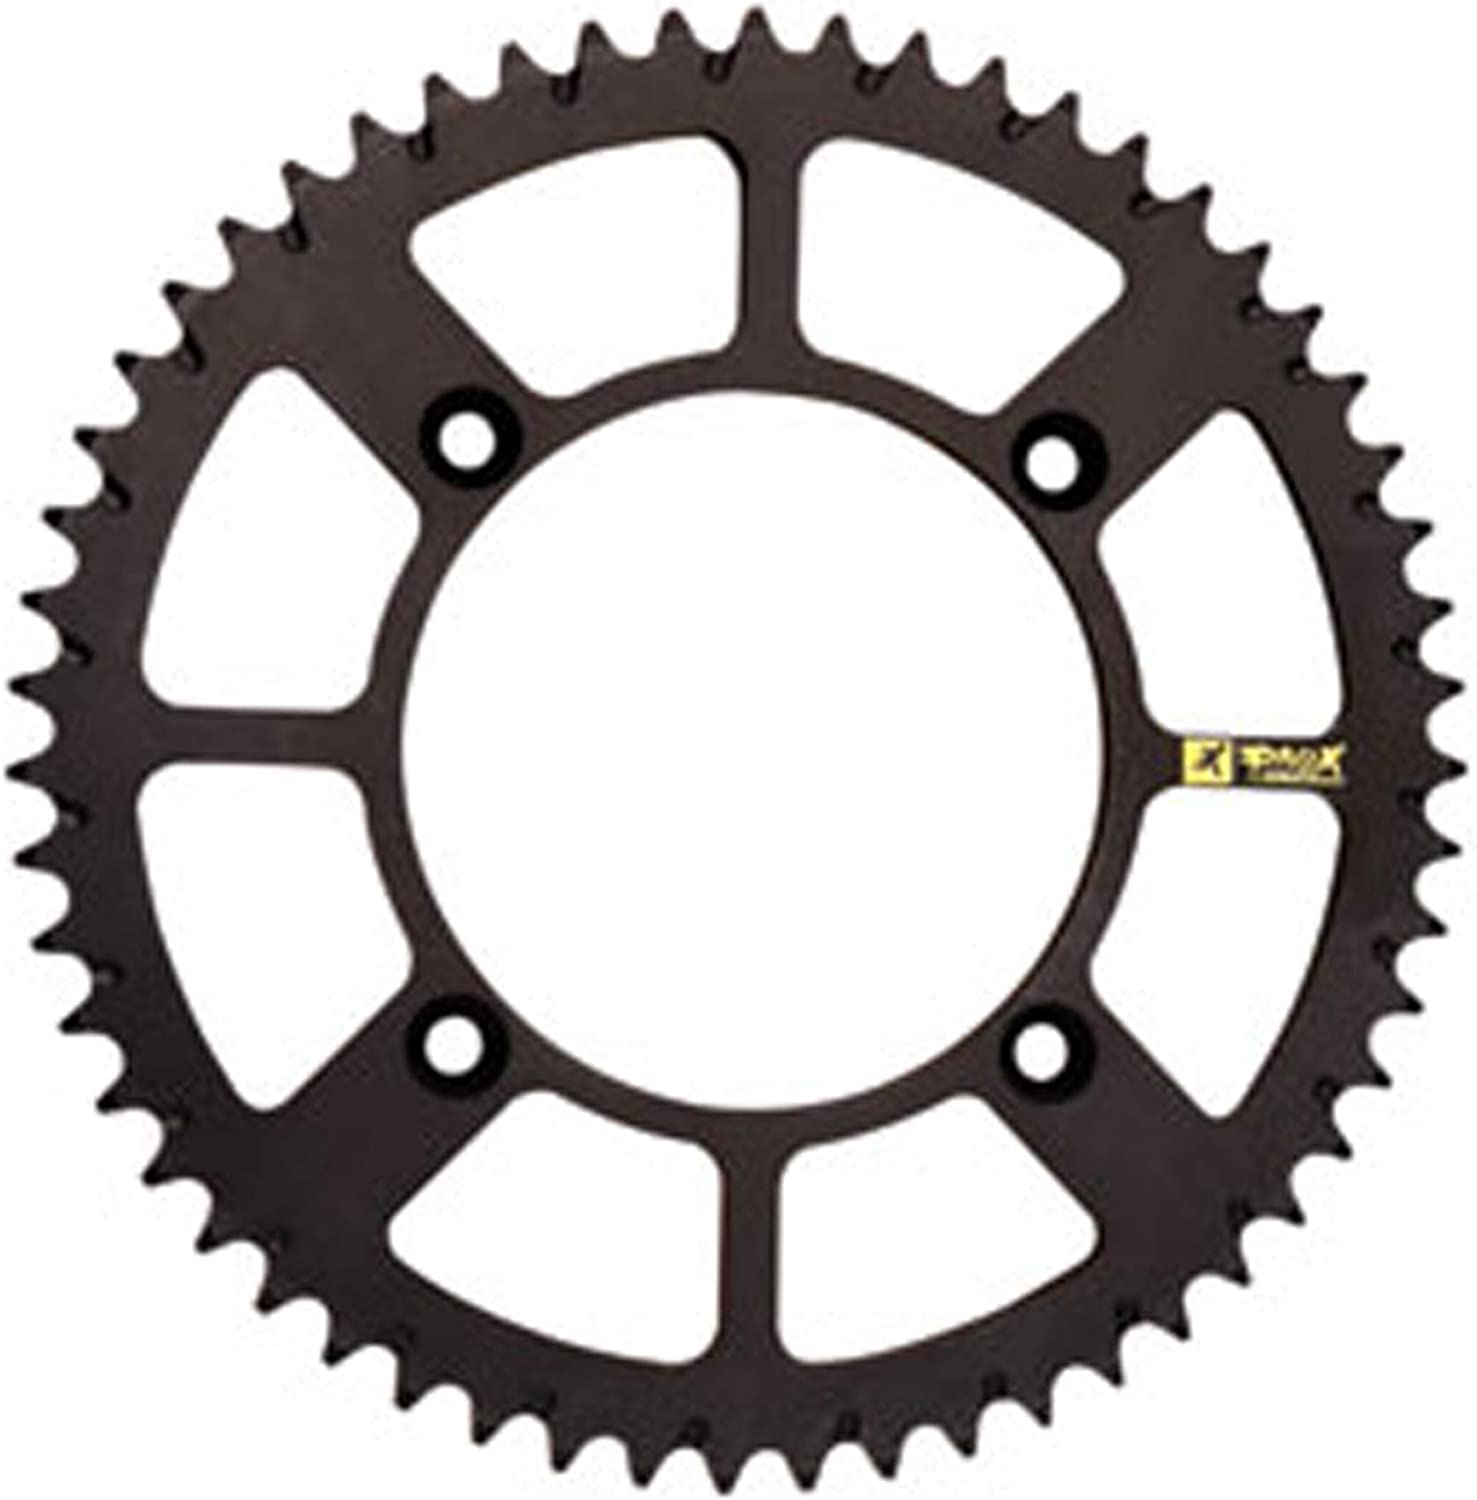 Animer and price revision Ultralite Steel Rear Sprocket - 2004 Fits Husqvarna Indianapolis Mall WR250 50T